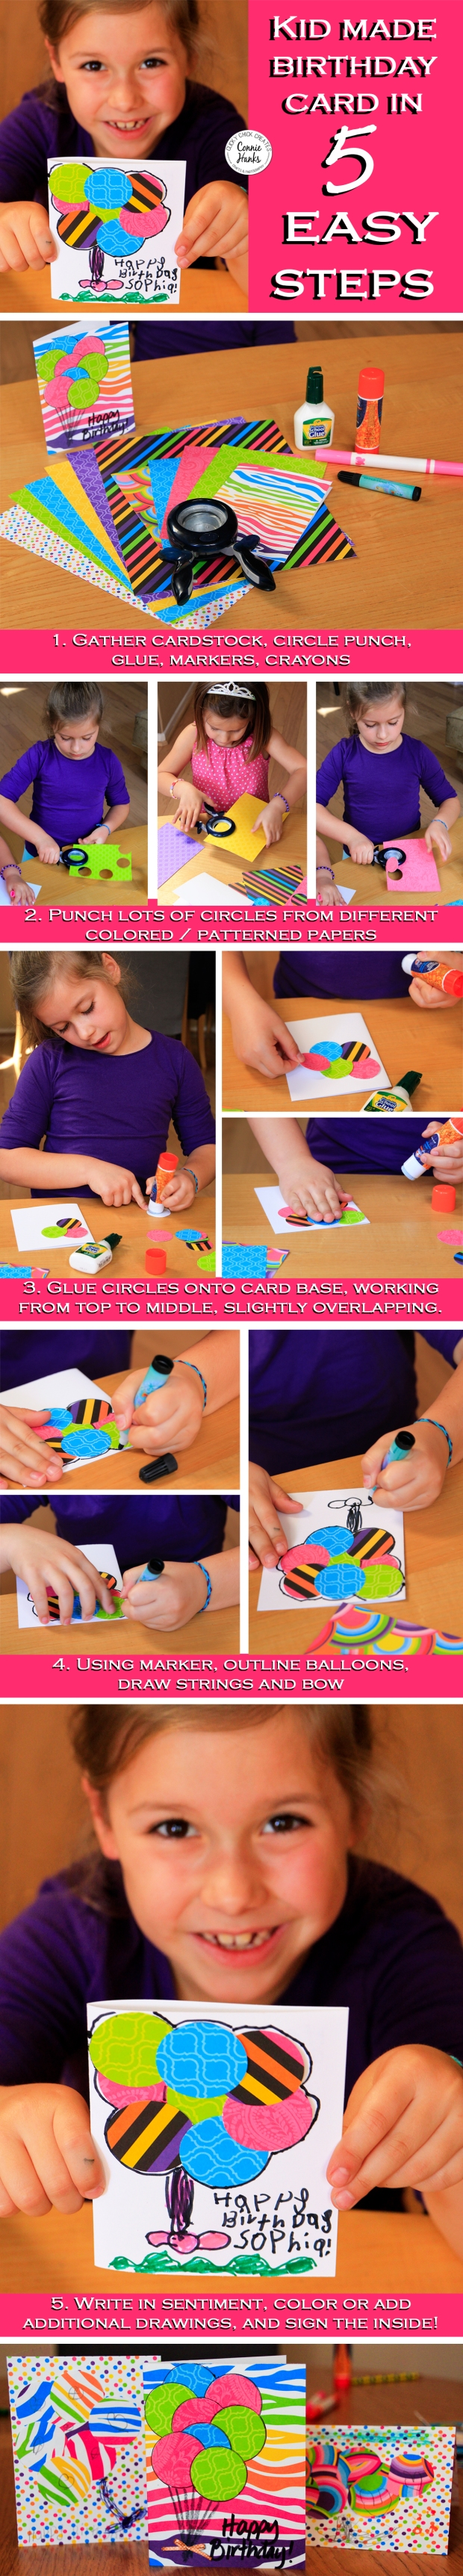 Connie Hanks Photography // ClickyChickCreates.com // kids handmade birthday card with balloons in 5 quick and easy steps